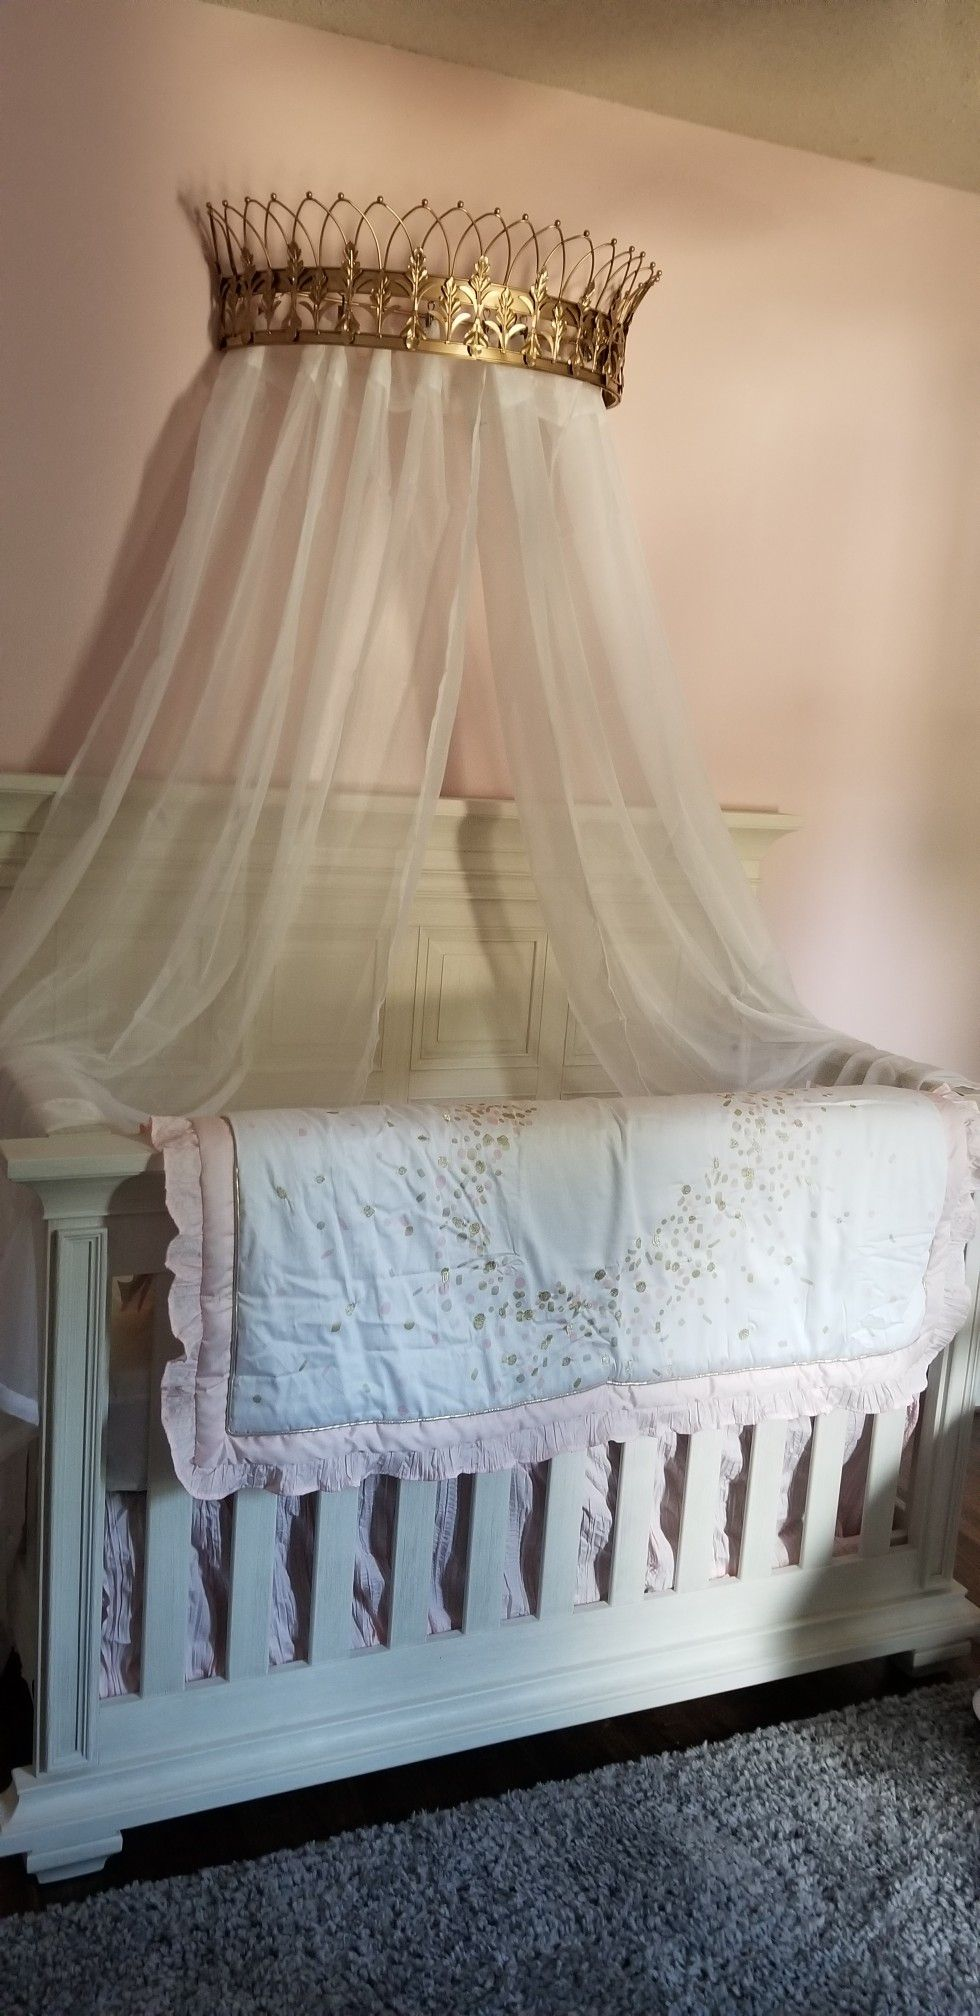 Crown With Sheers Baby Girl Crib Teester Baby Canopy Nursery Ideas Gold Crown Baby Girl Room Ideas Crib Canopy Canopy Bedroom Canopy Over Bed